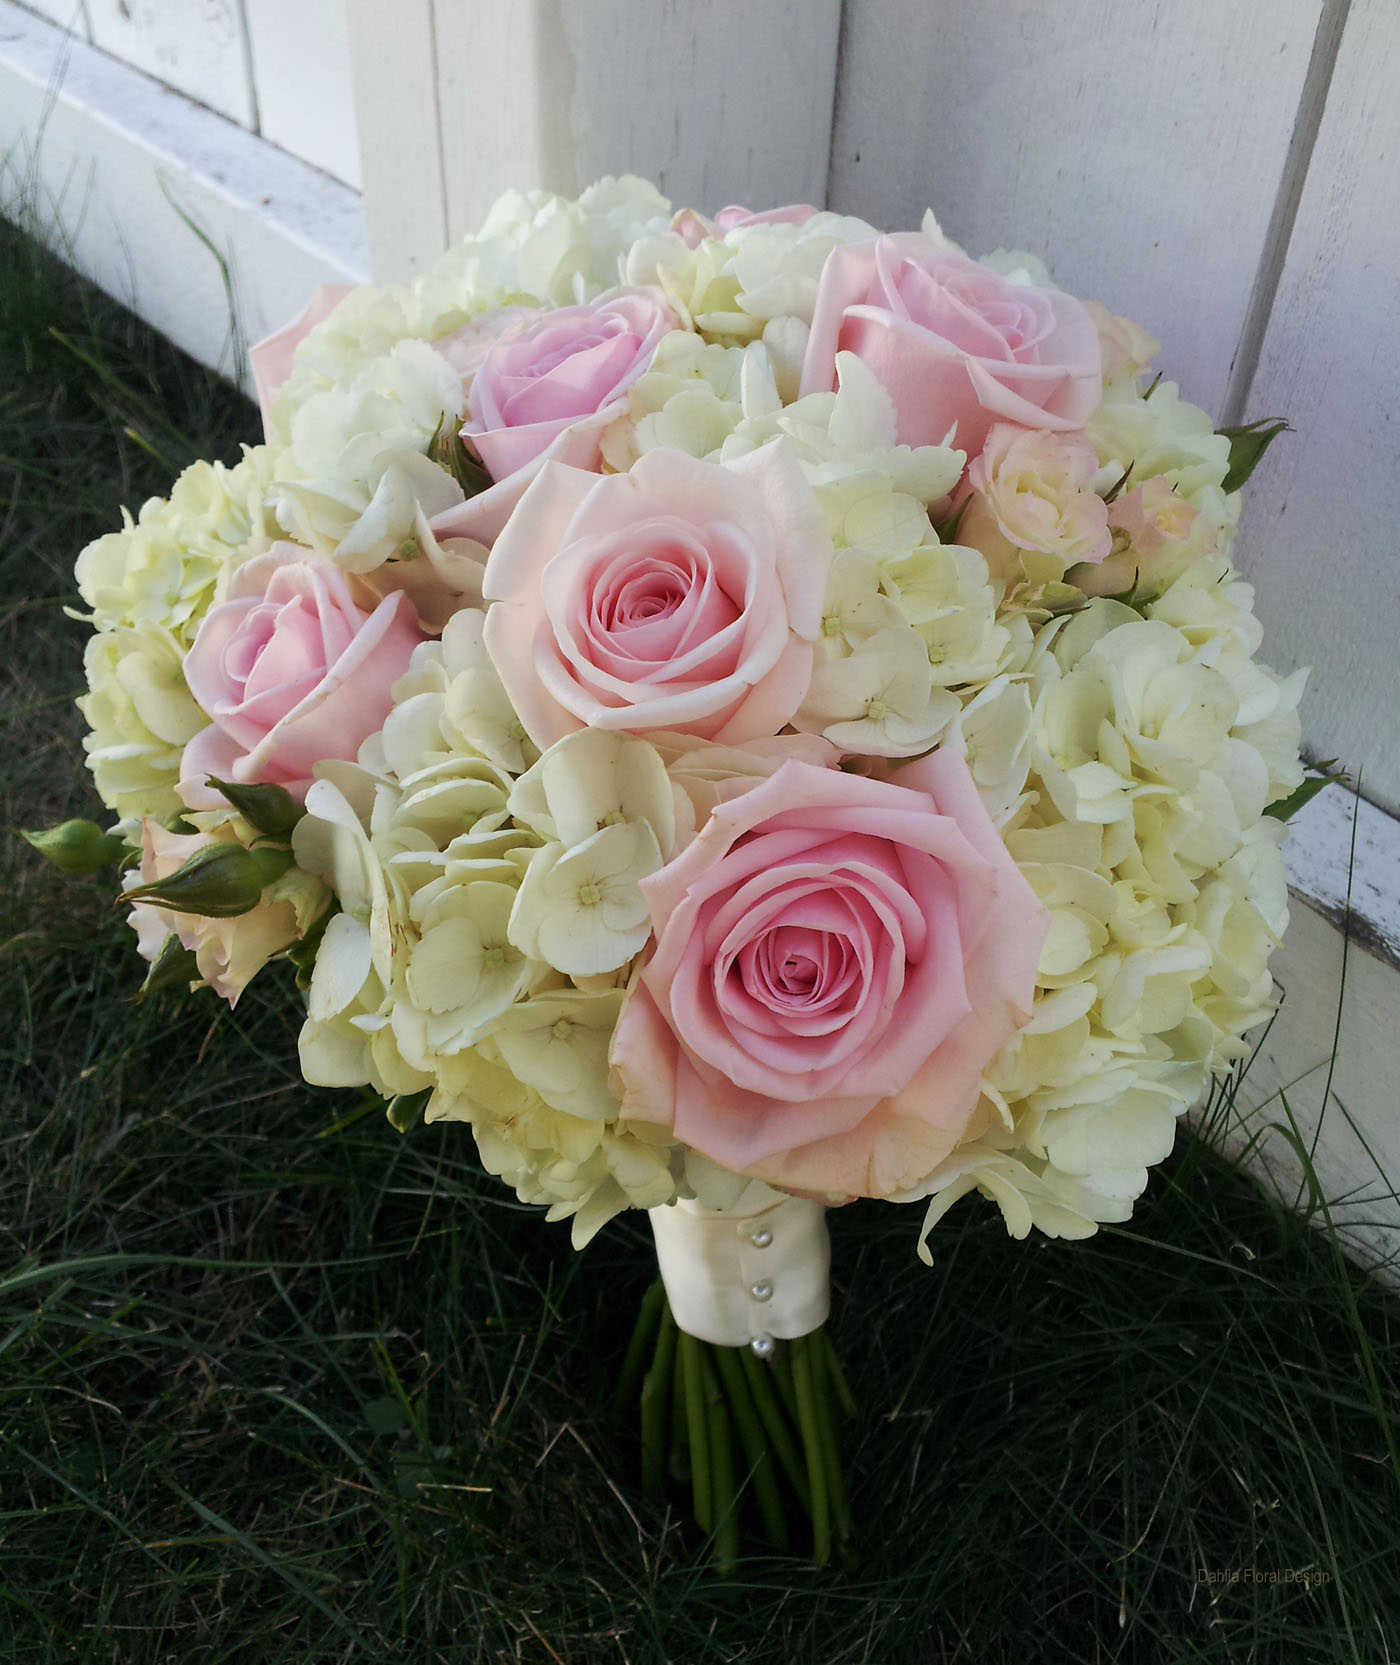 White Wedding Flowers: White And Pink Hydrangea Wedding Flower Bridal Party Bouquet